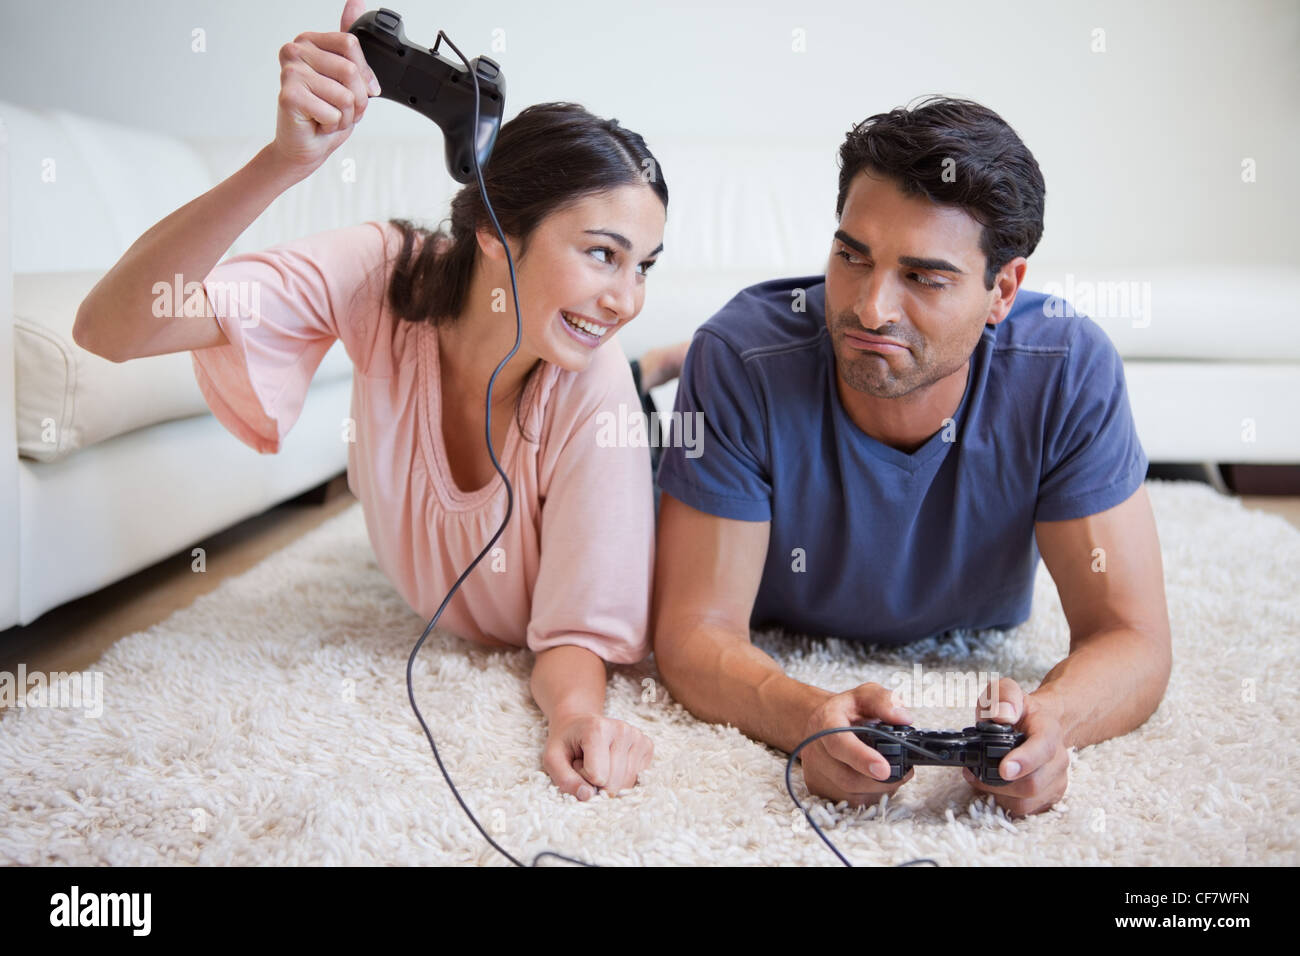 Woman beating her fiance while playing video games - Stock Image